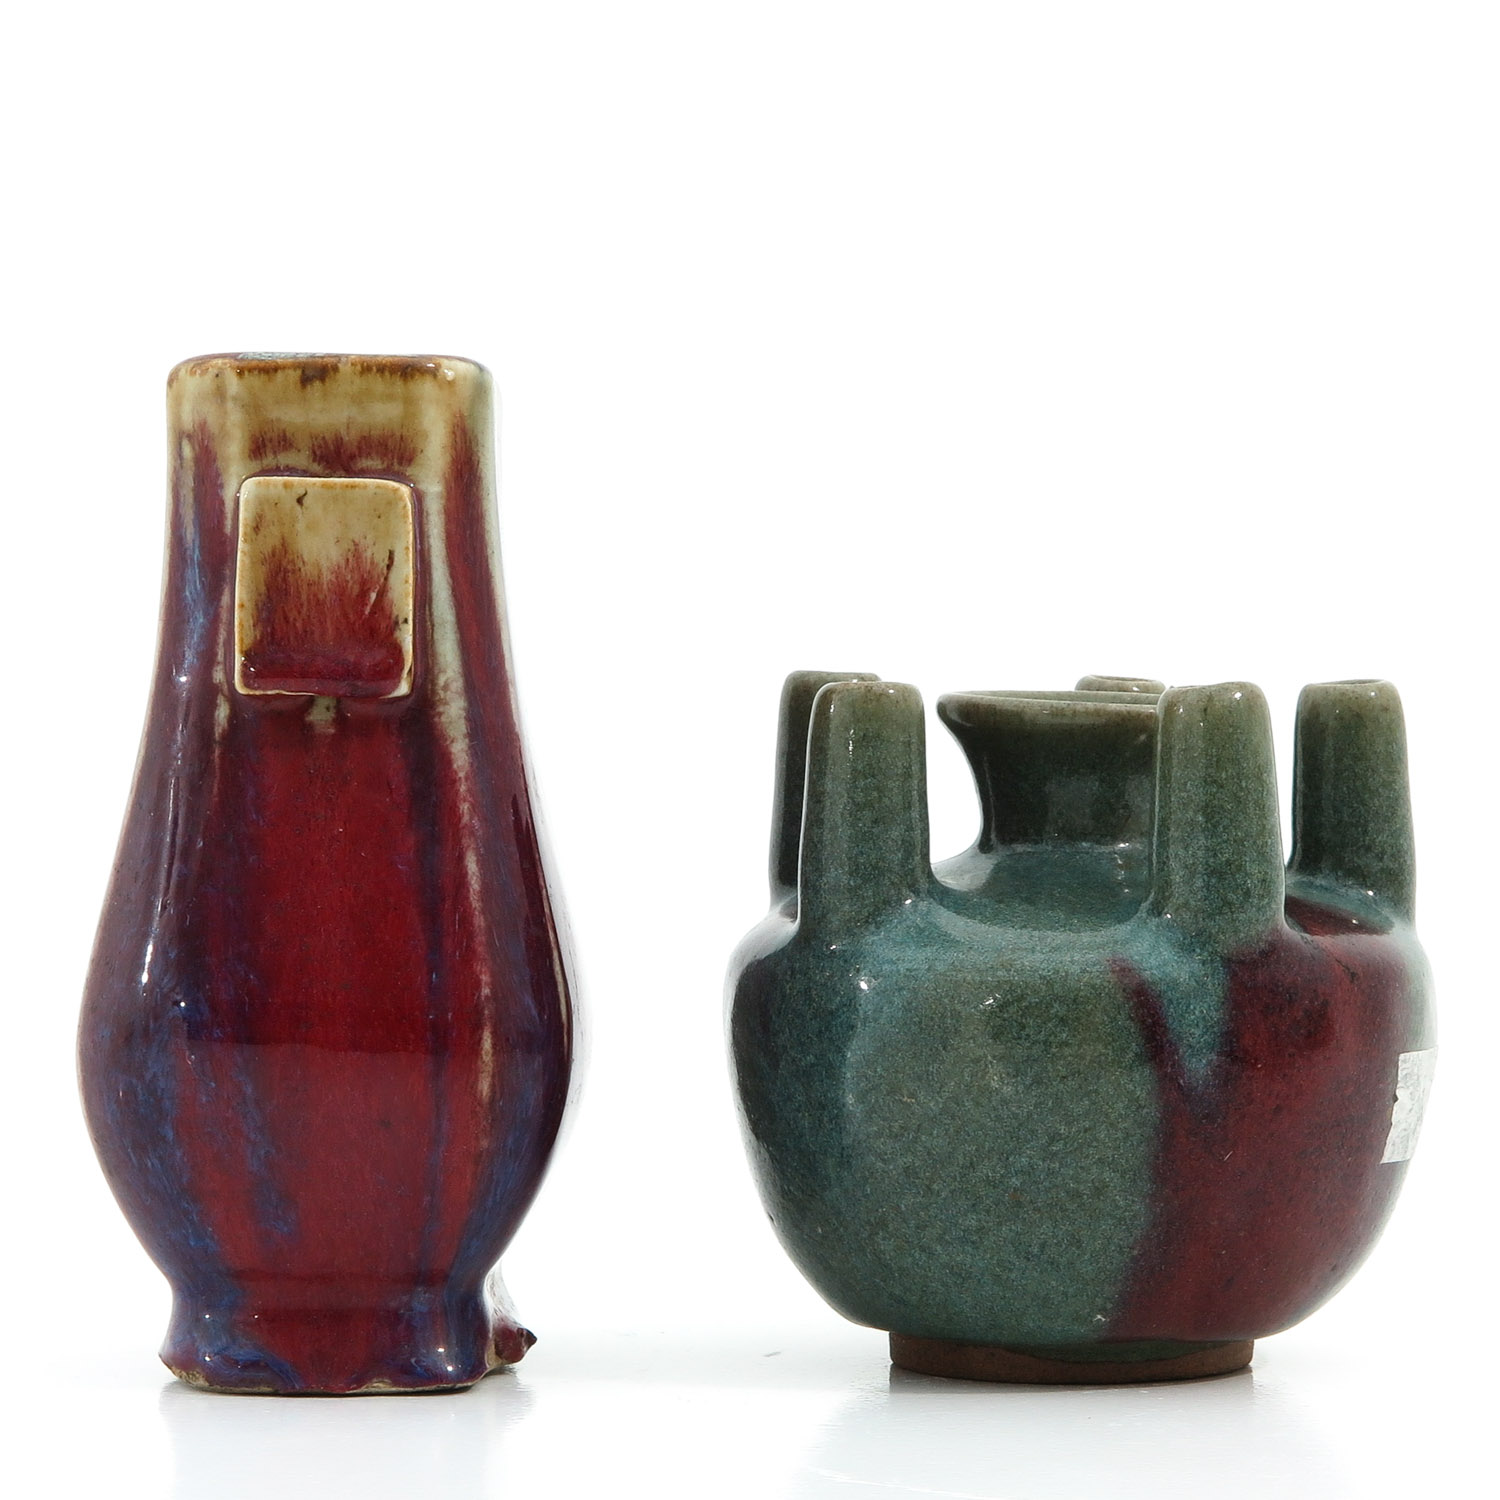 2 Chinese Vases - Image 2 of 10